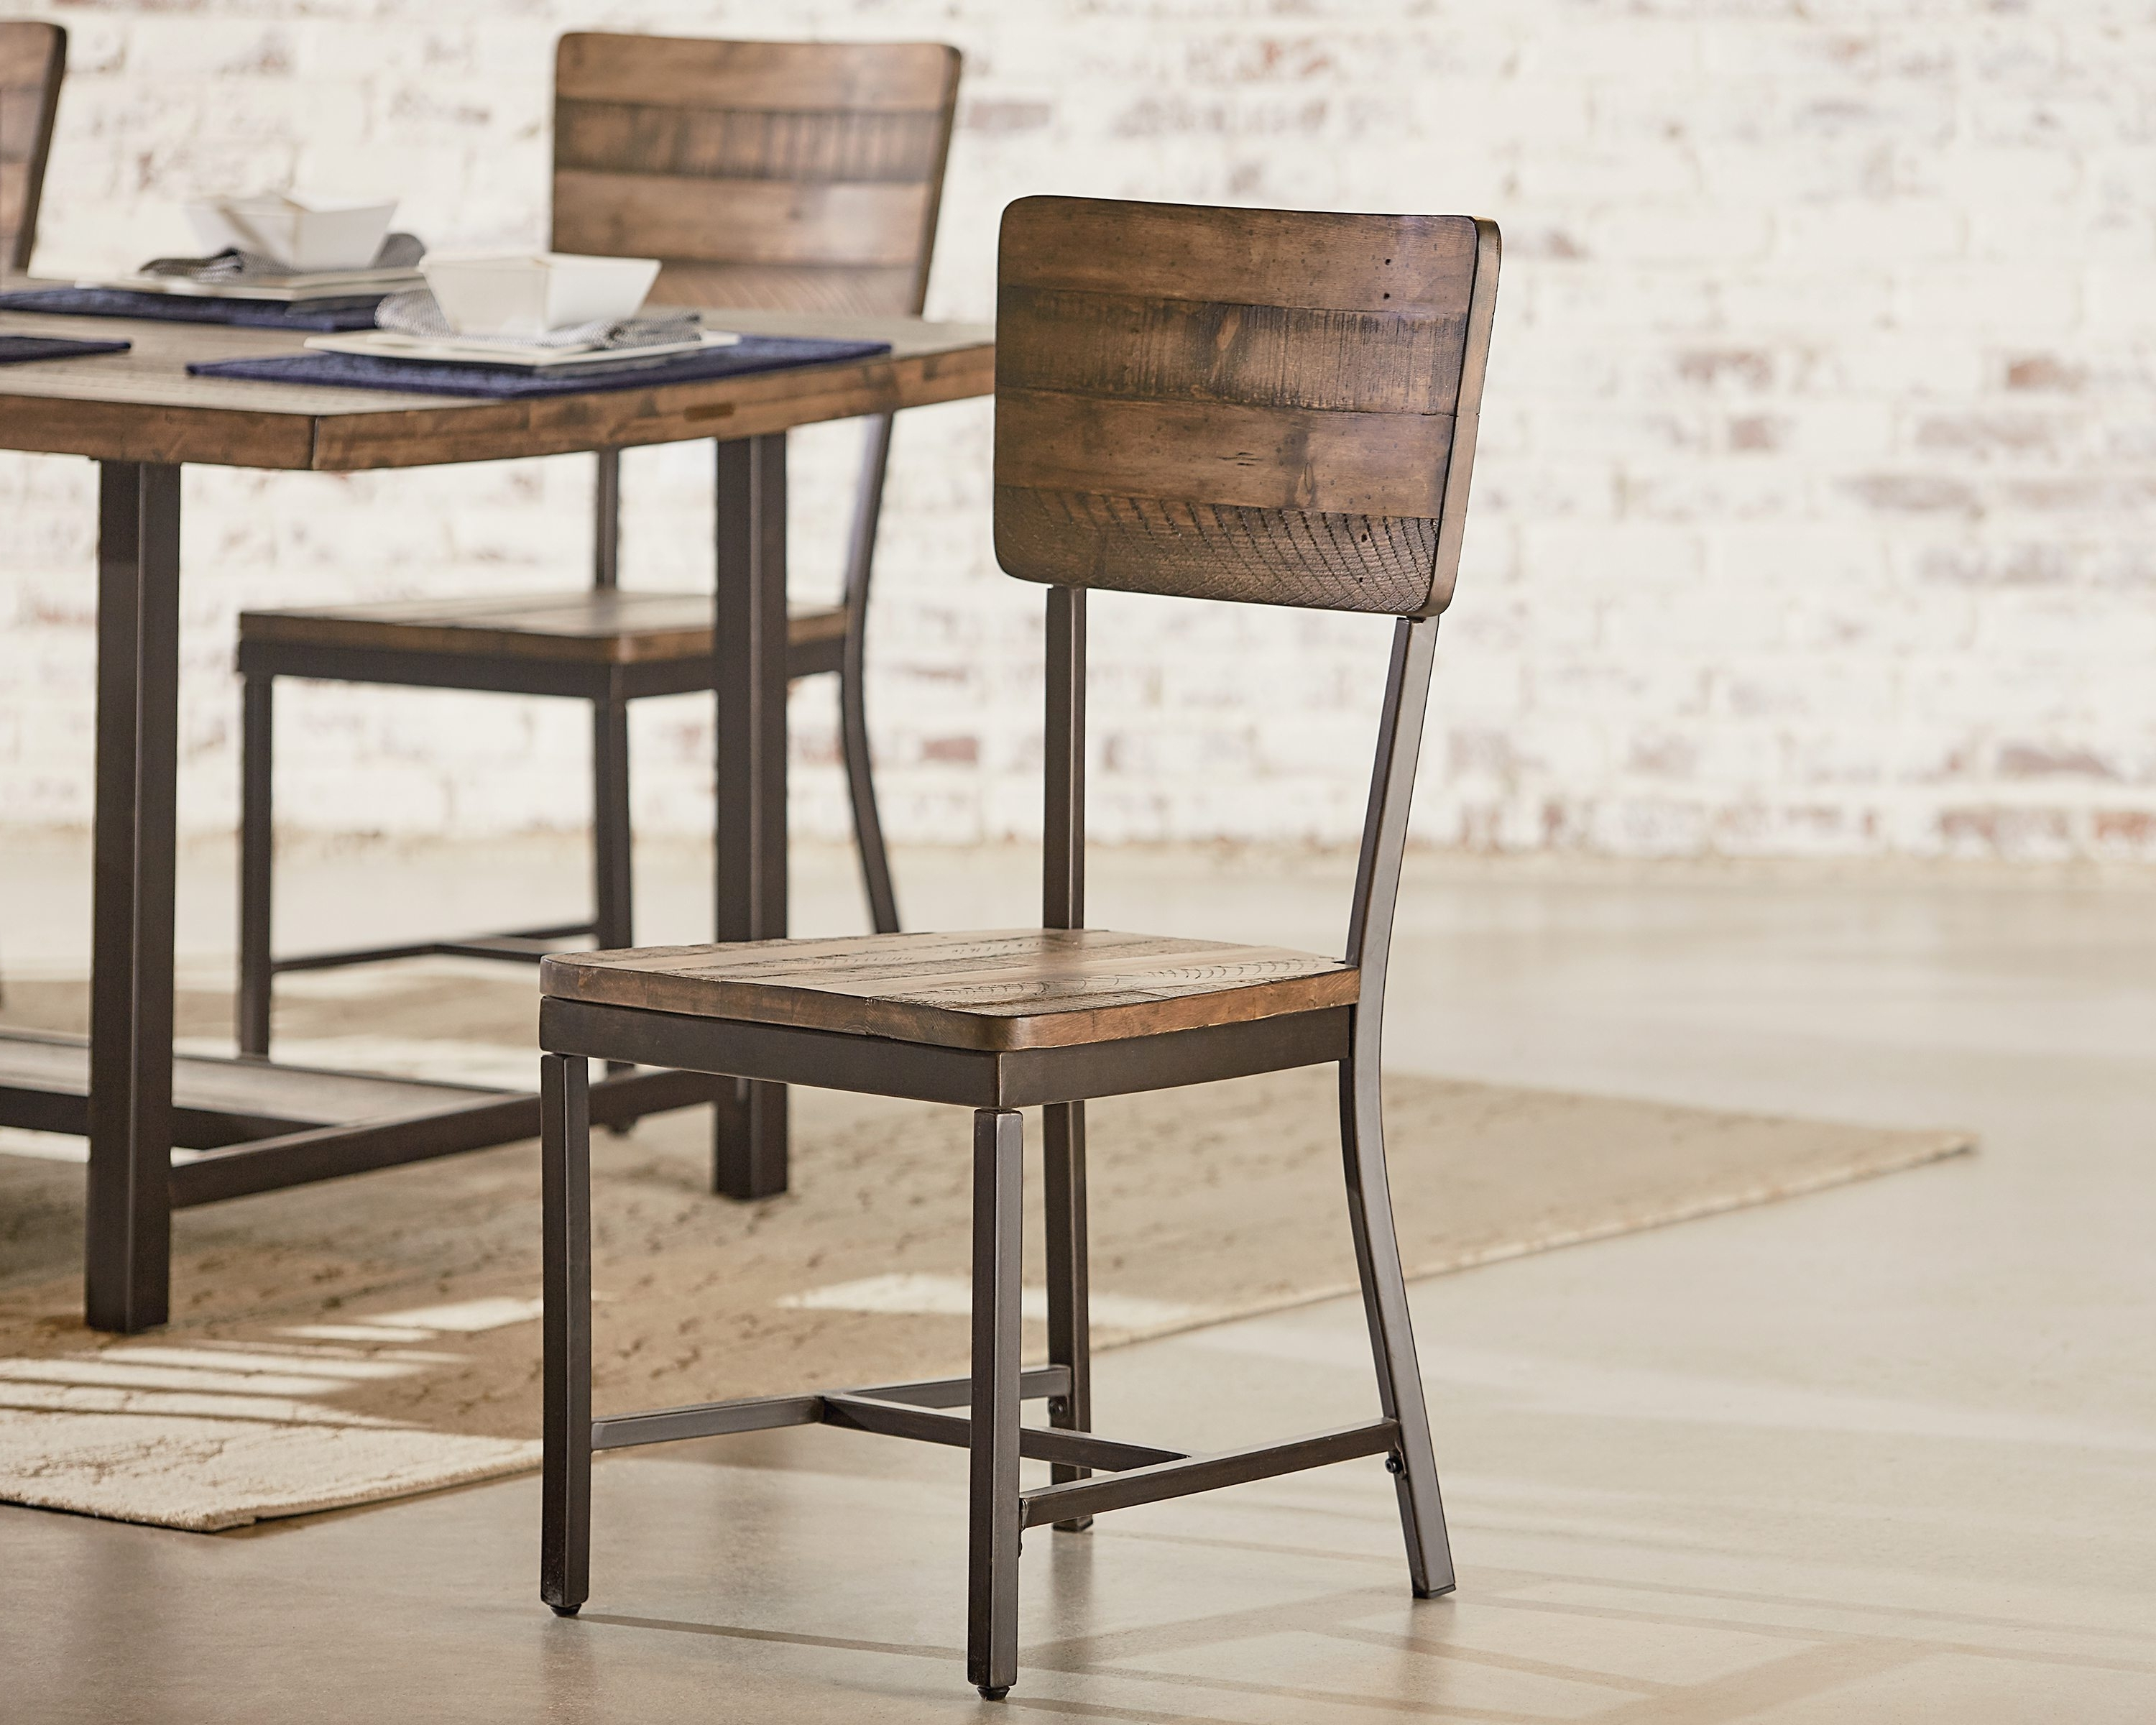 Magnolia Home Contour Milk Crate Side Chairs Regarding Trendy Contour Side Chair – Magnolia Home (View 4 of 20)